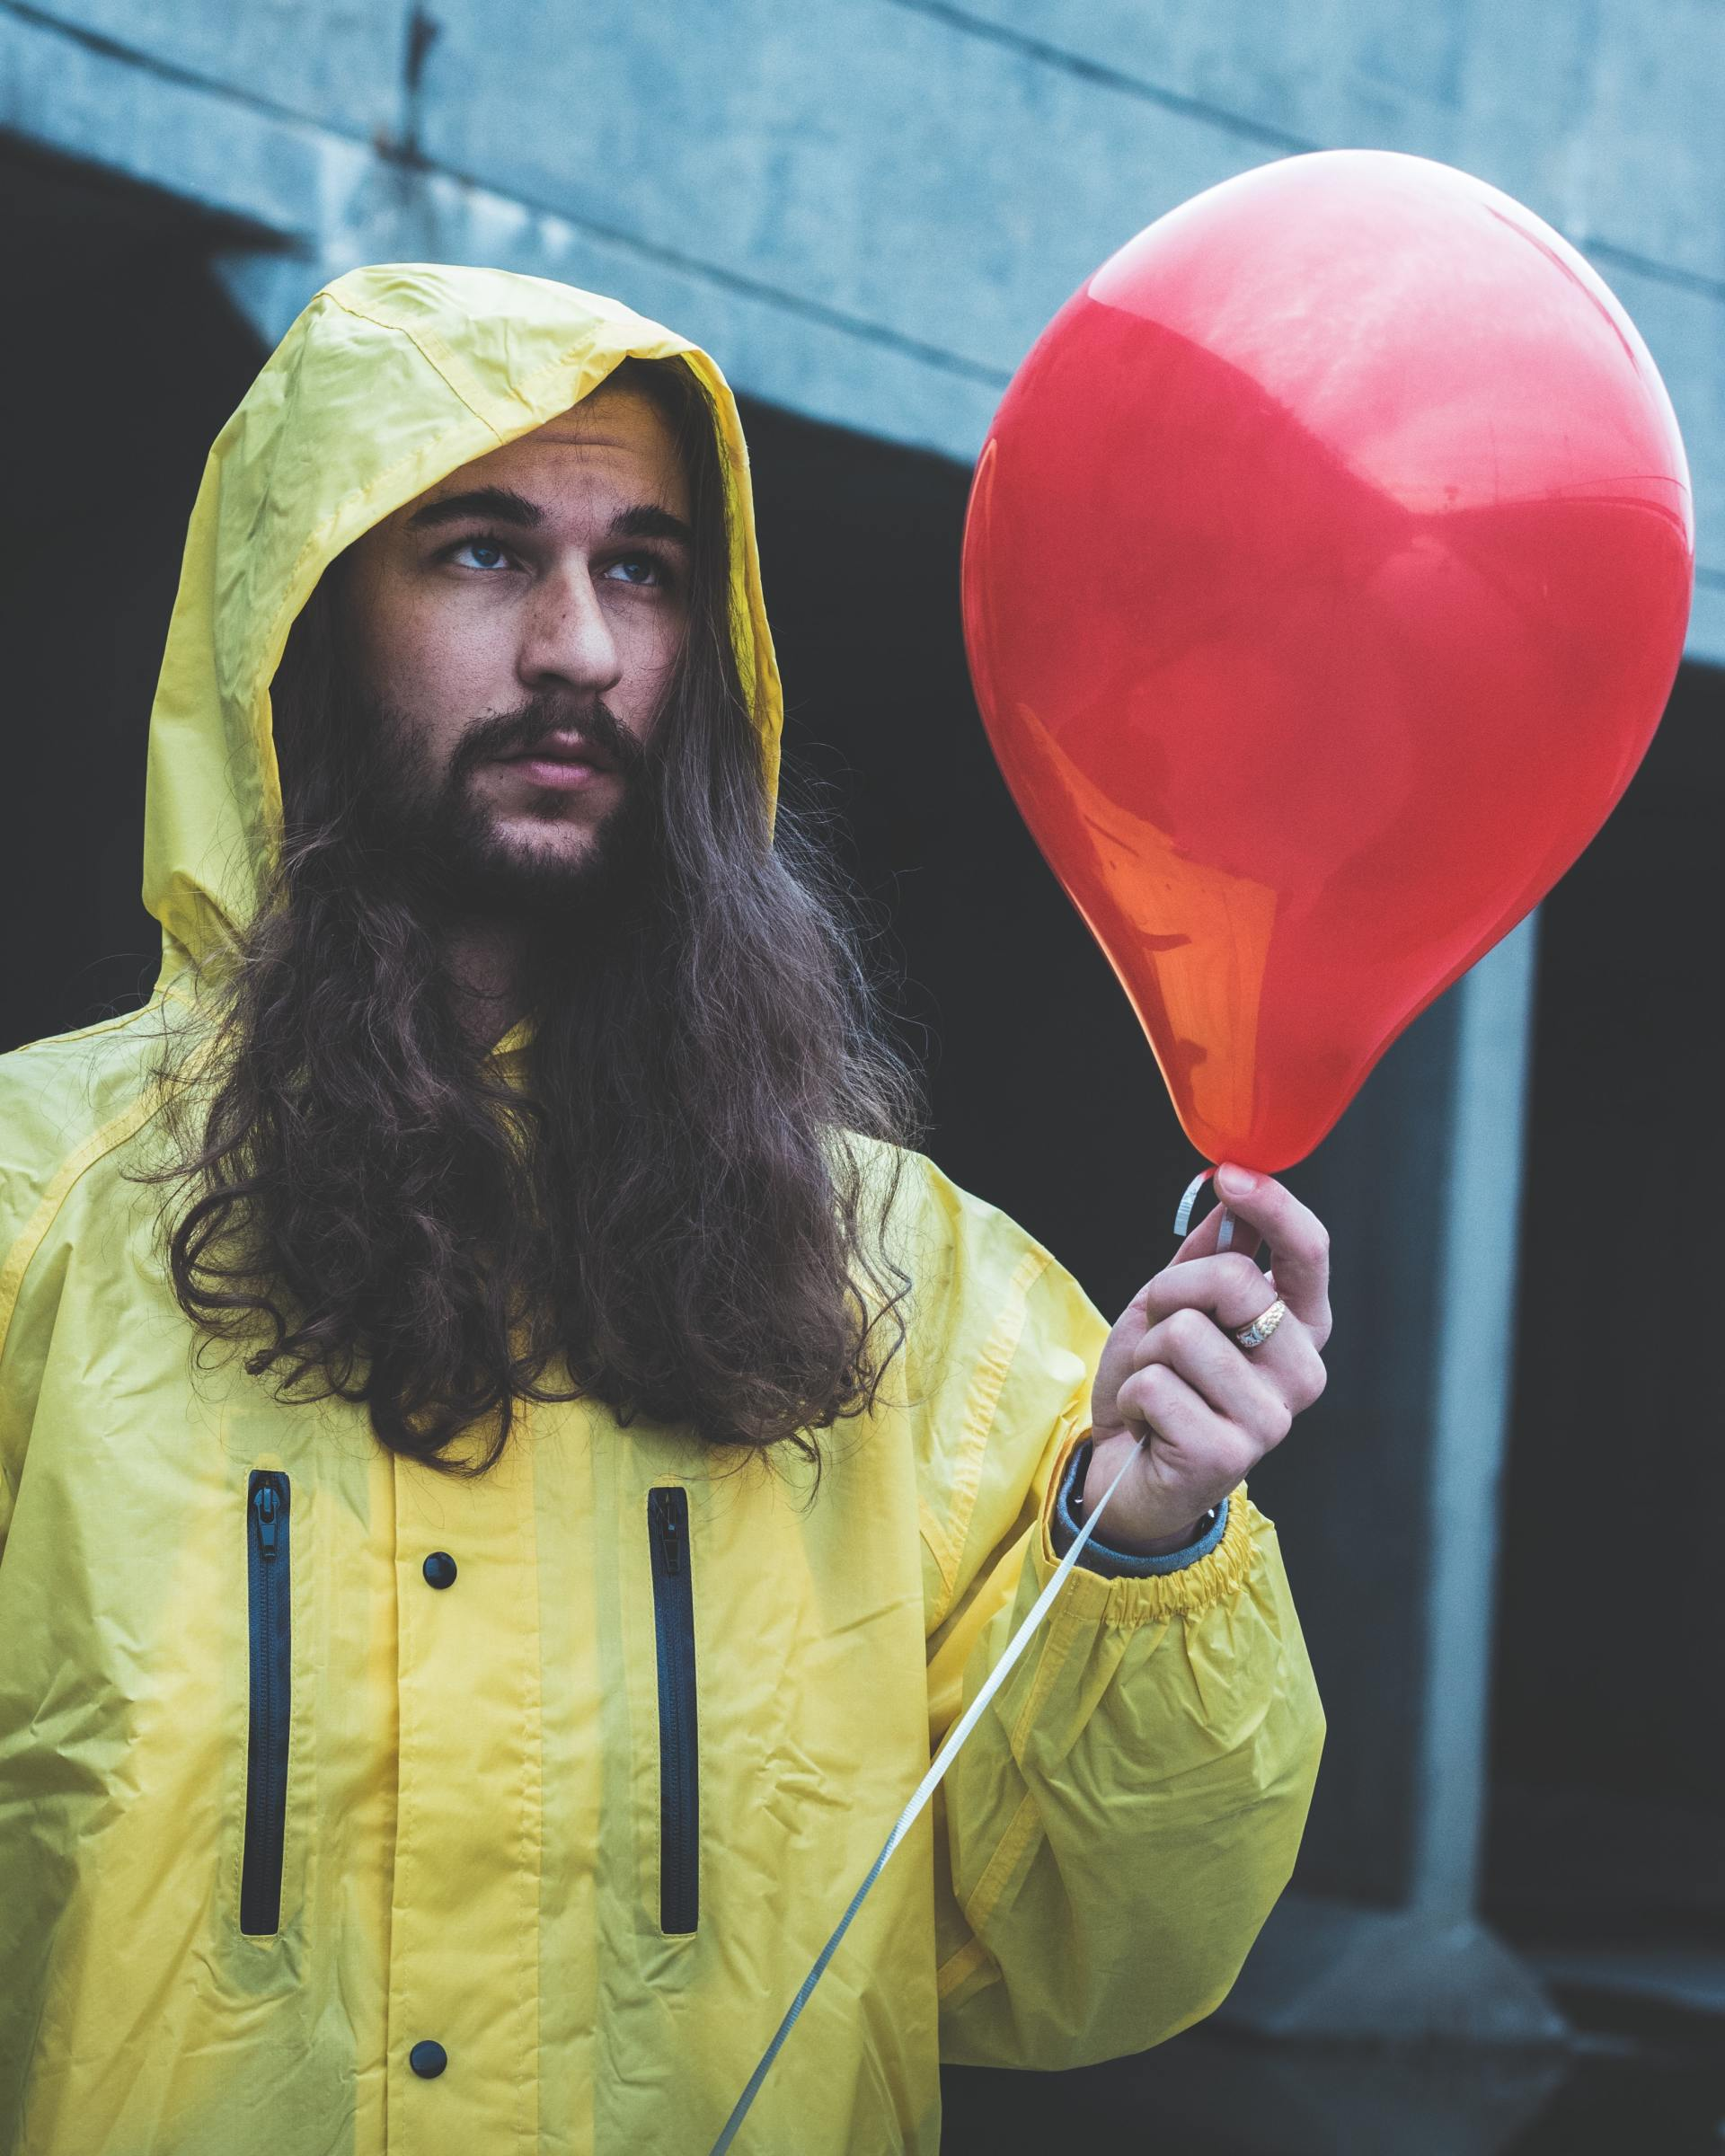 A man with long dark hair and a moustache wears a yellow rain jacket and holds a red balloon